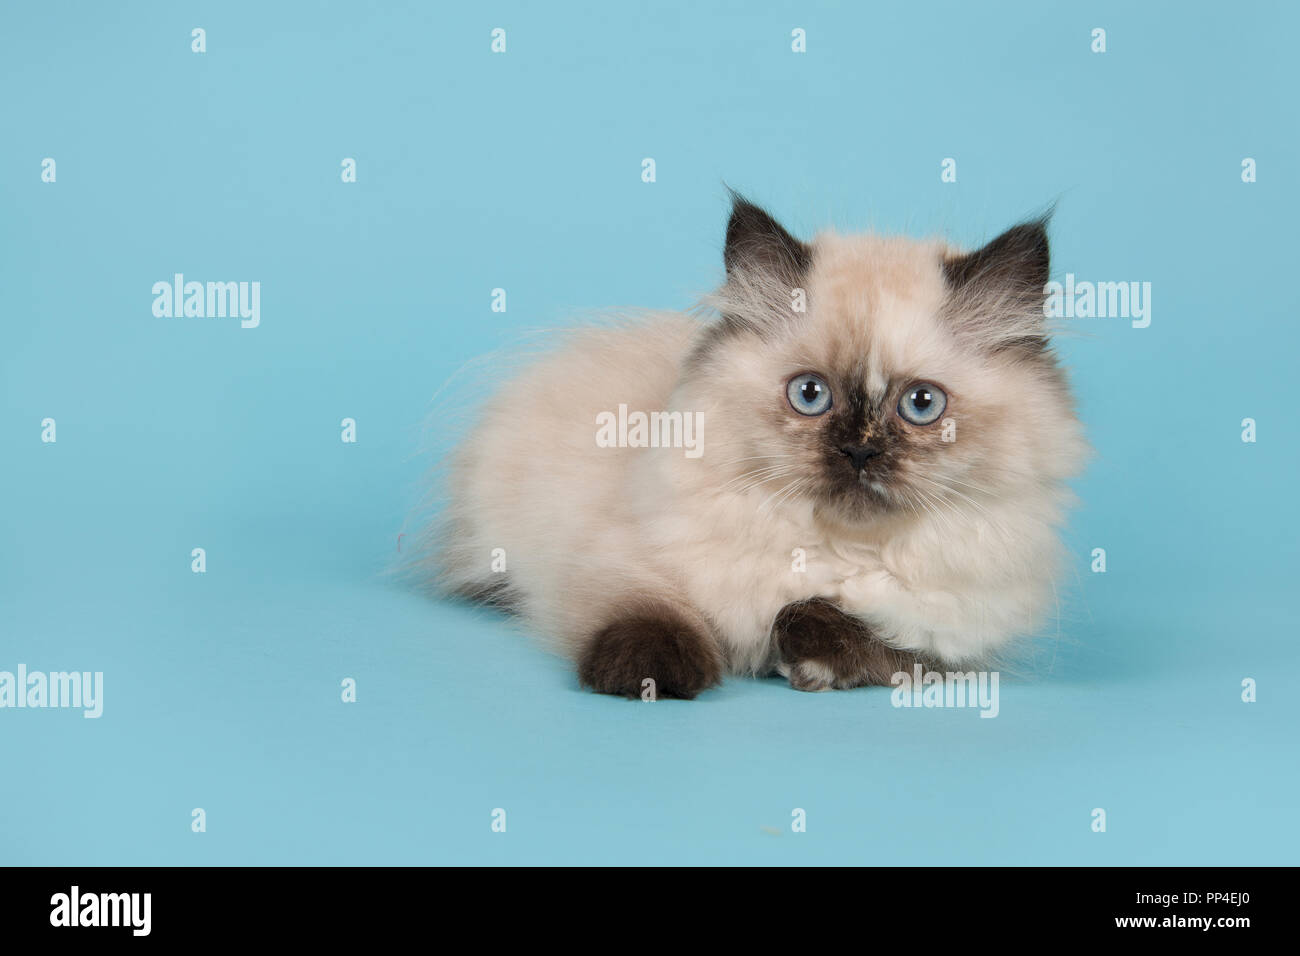 Seal Point Persian Longhair Kitten With Blue Eyes Lying On A